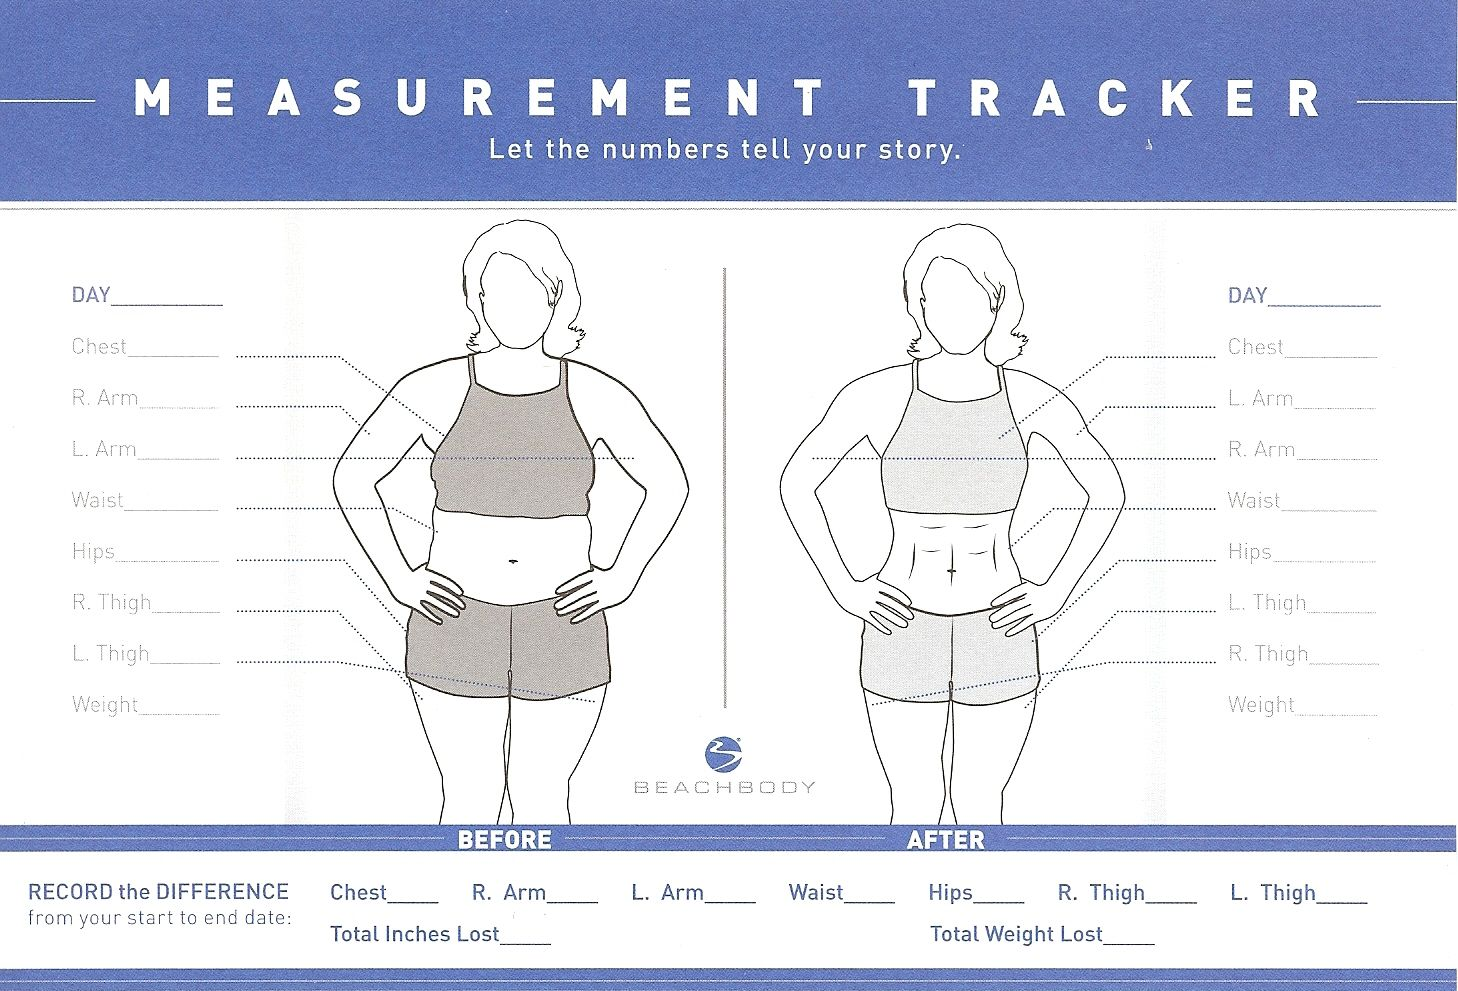 Beachbody Measurement Tracker Chart Measurements Tracker